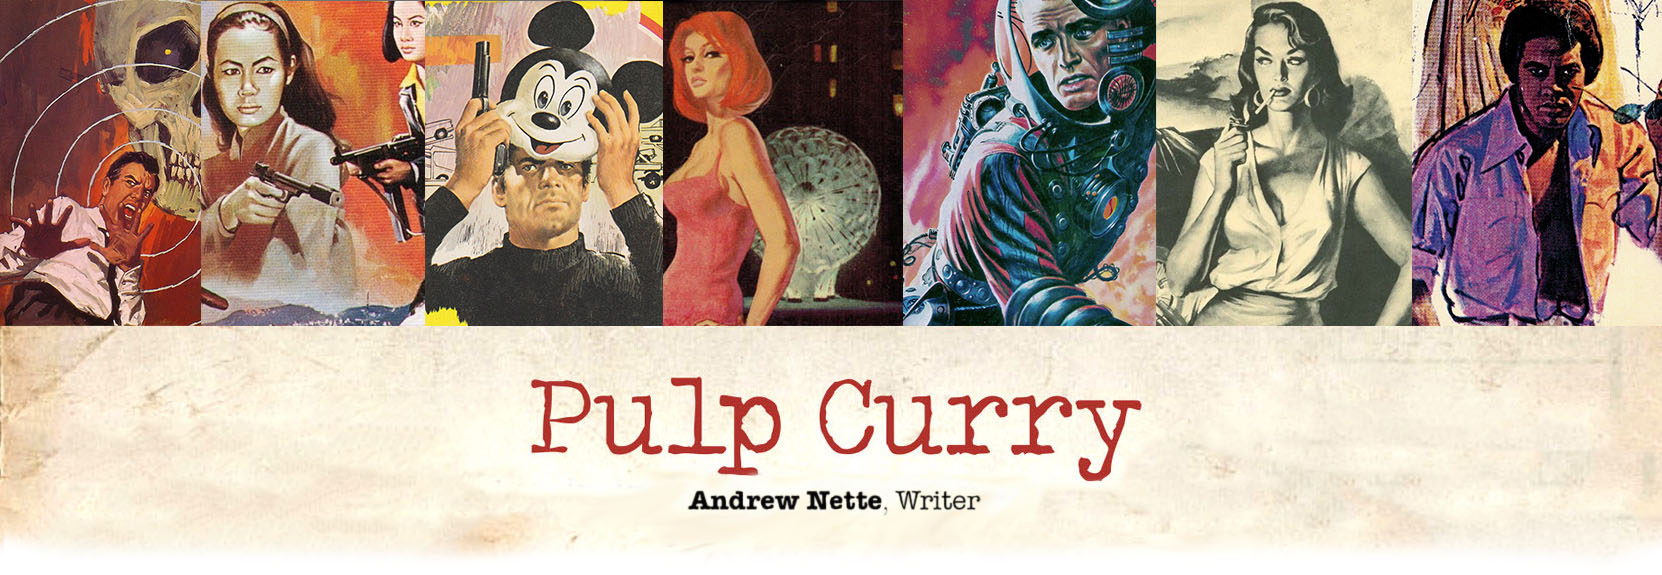 Pulp Curry